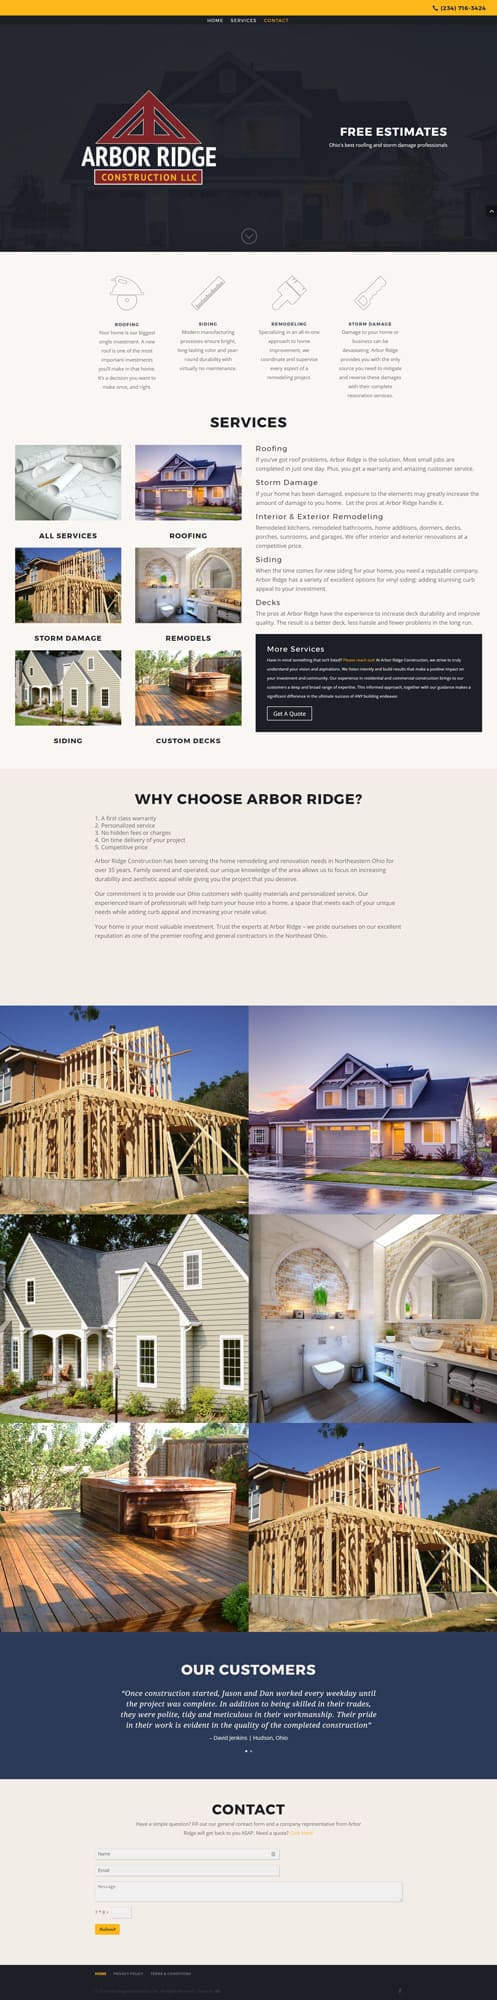 arbor ridge construction home page image design by dlb web media mogadore ohio